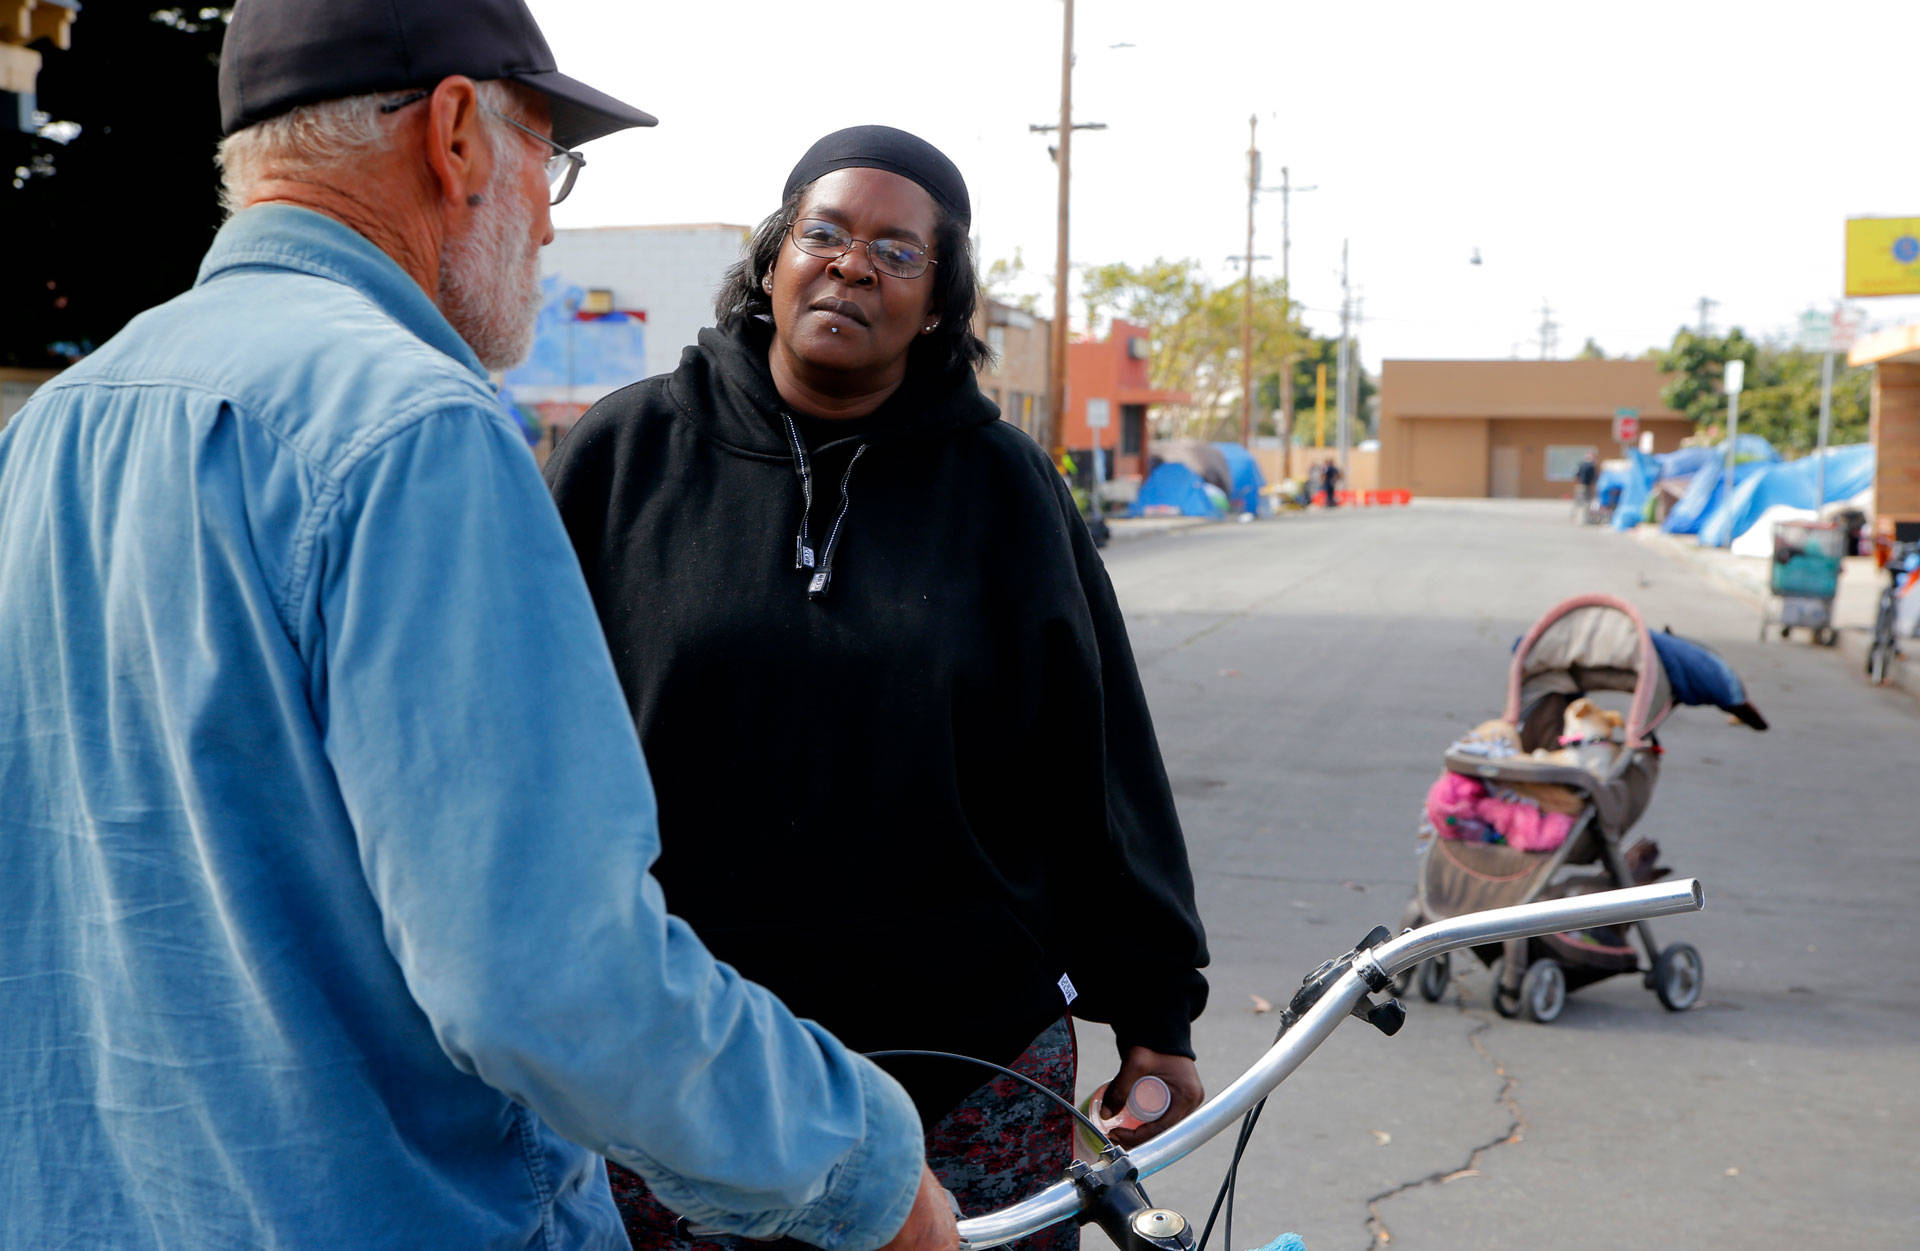 Yolanda Harraway, who used to be homeless in the Chinatown area of Salinas, has found permanent housing and earned her high school diploma. Photo: Chelcey Adami